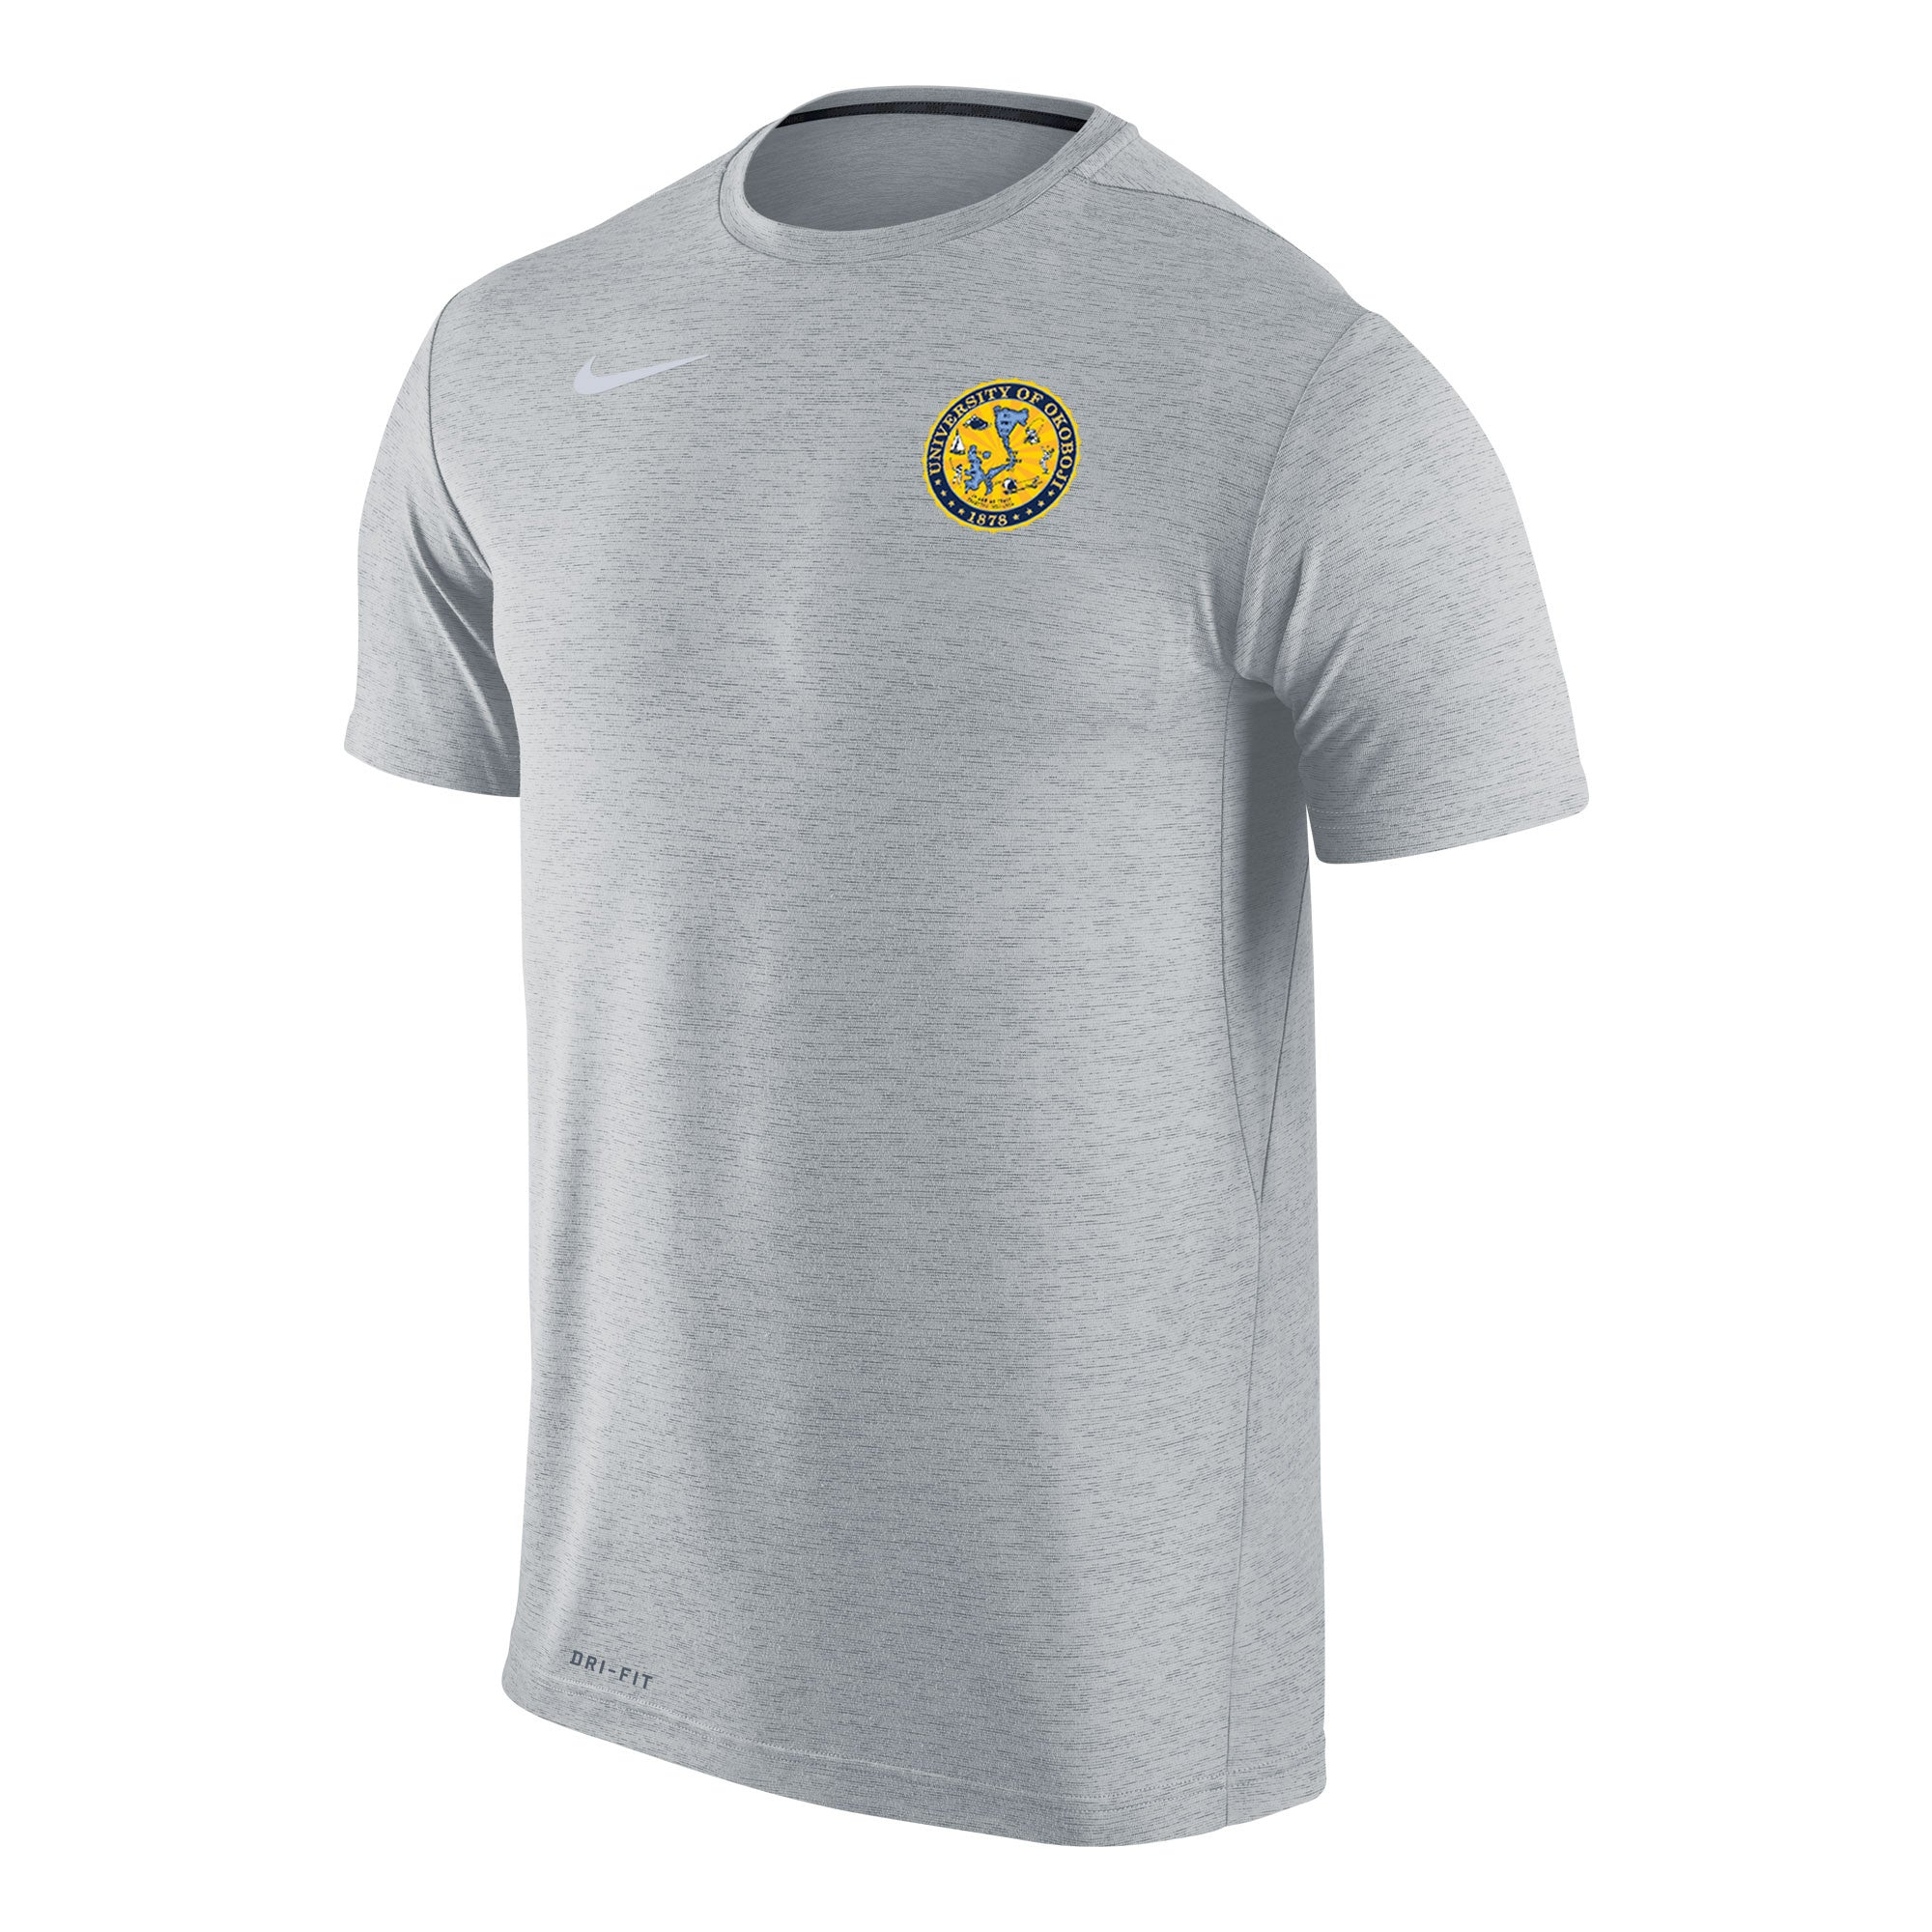 Men's Nike Dri-FIT Touch Short Sleeve Tee - Wolf Grey Heather